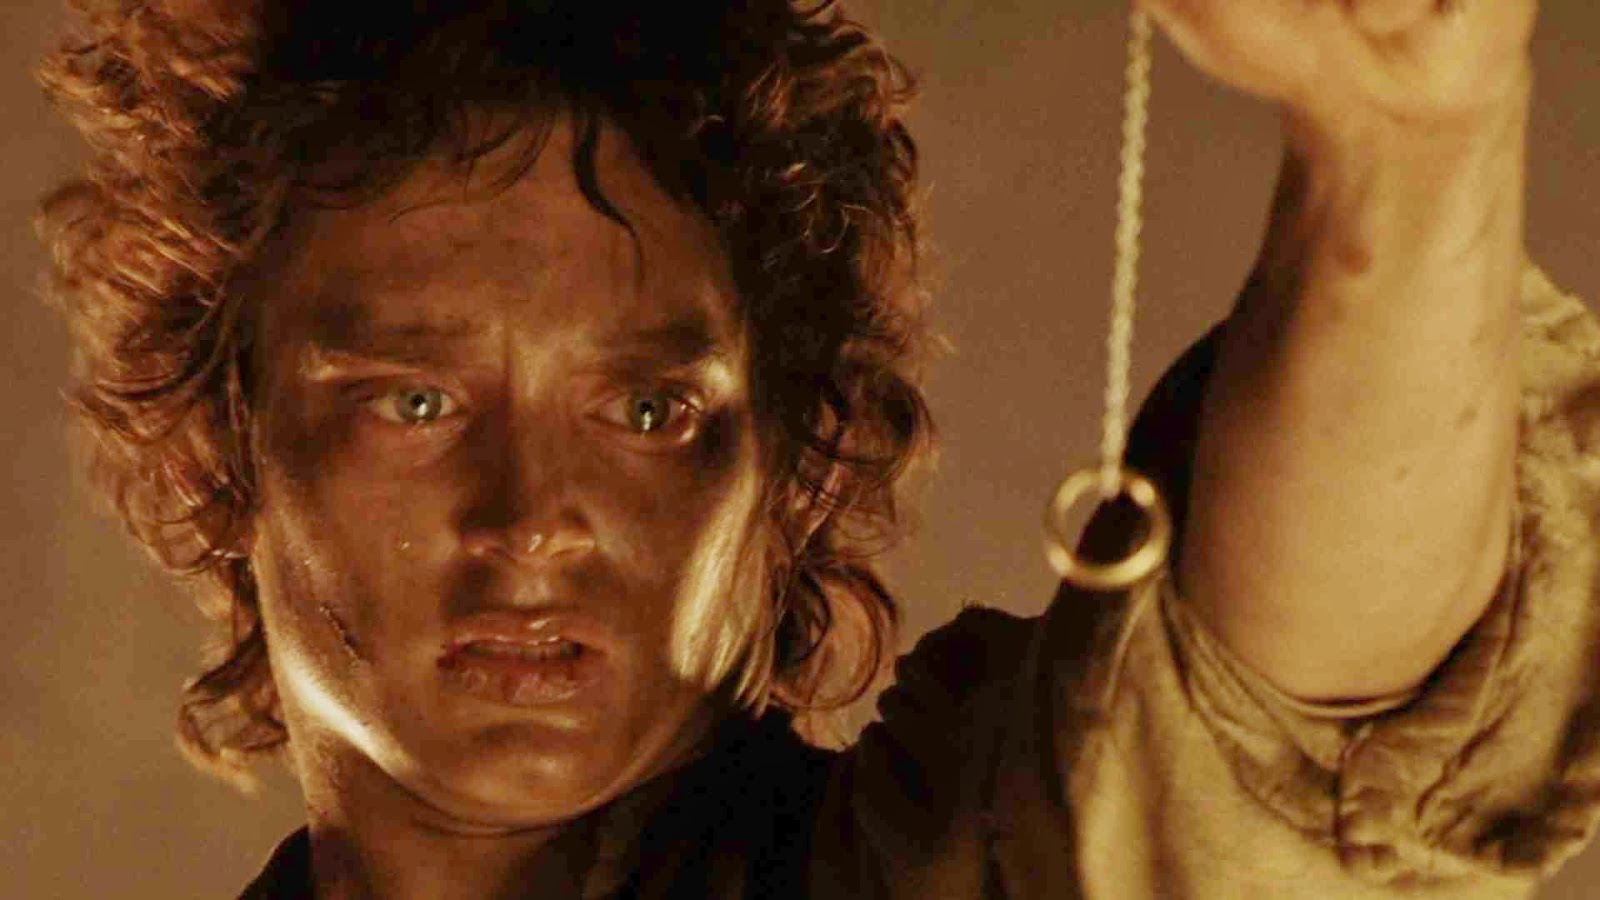 The Lord of the Rings: The Return of the King (2003) Review